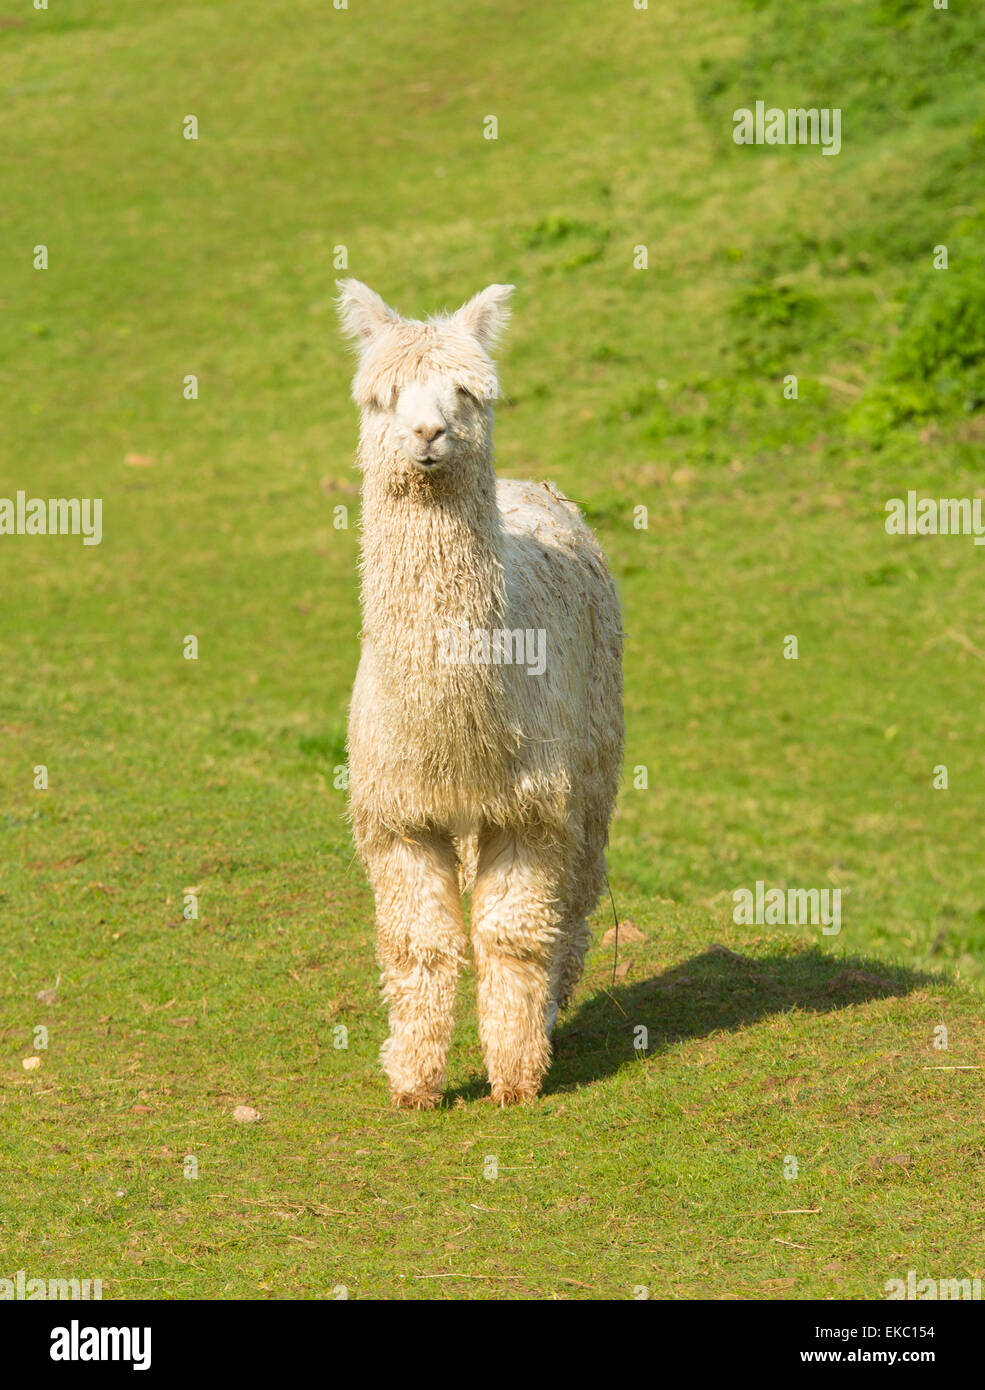 White Alpaca South American camelid resembles small llama with coat used for wool and cute smile - Stock Image